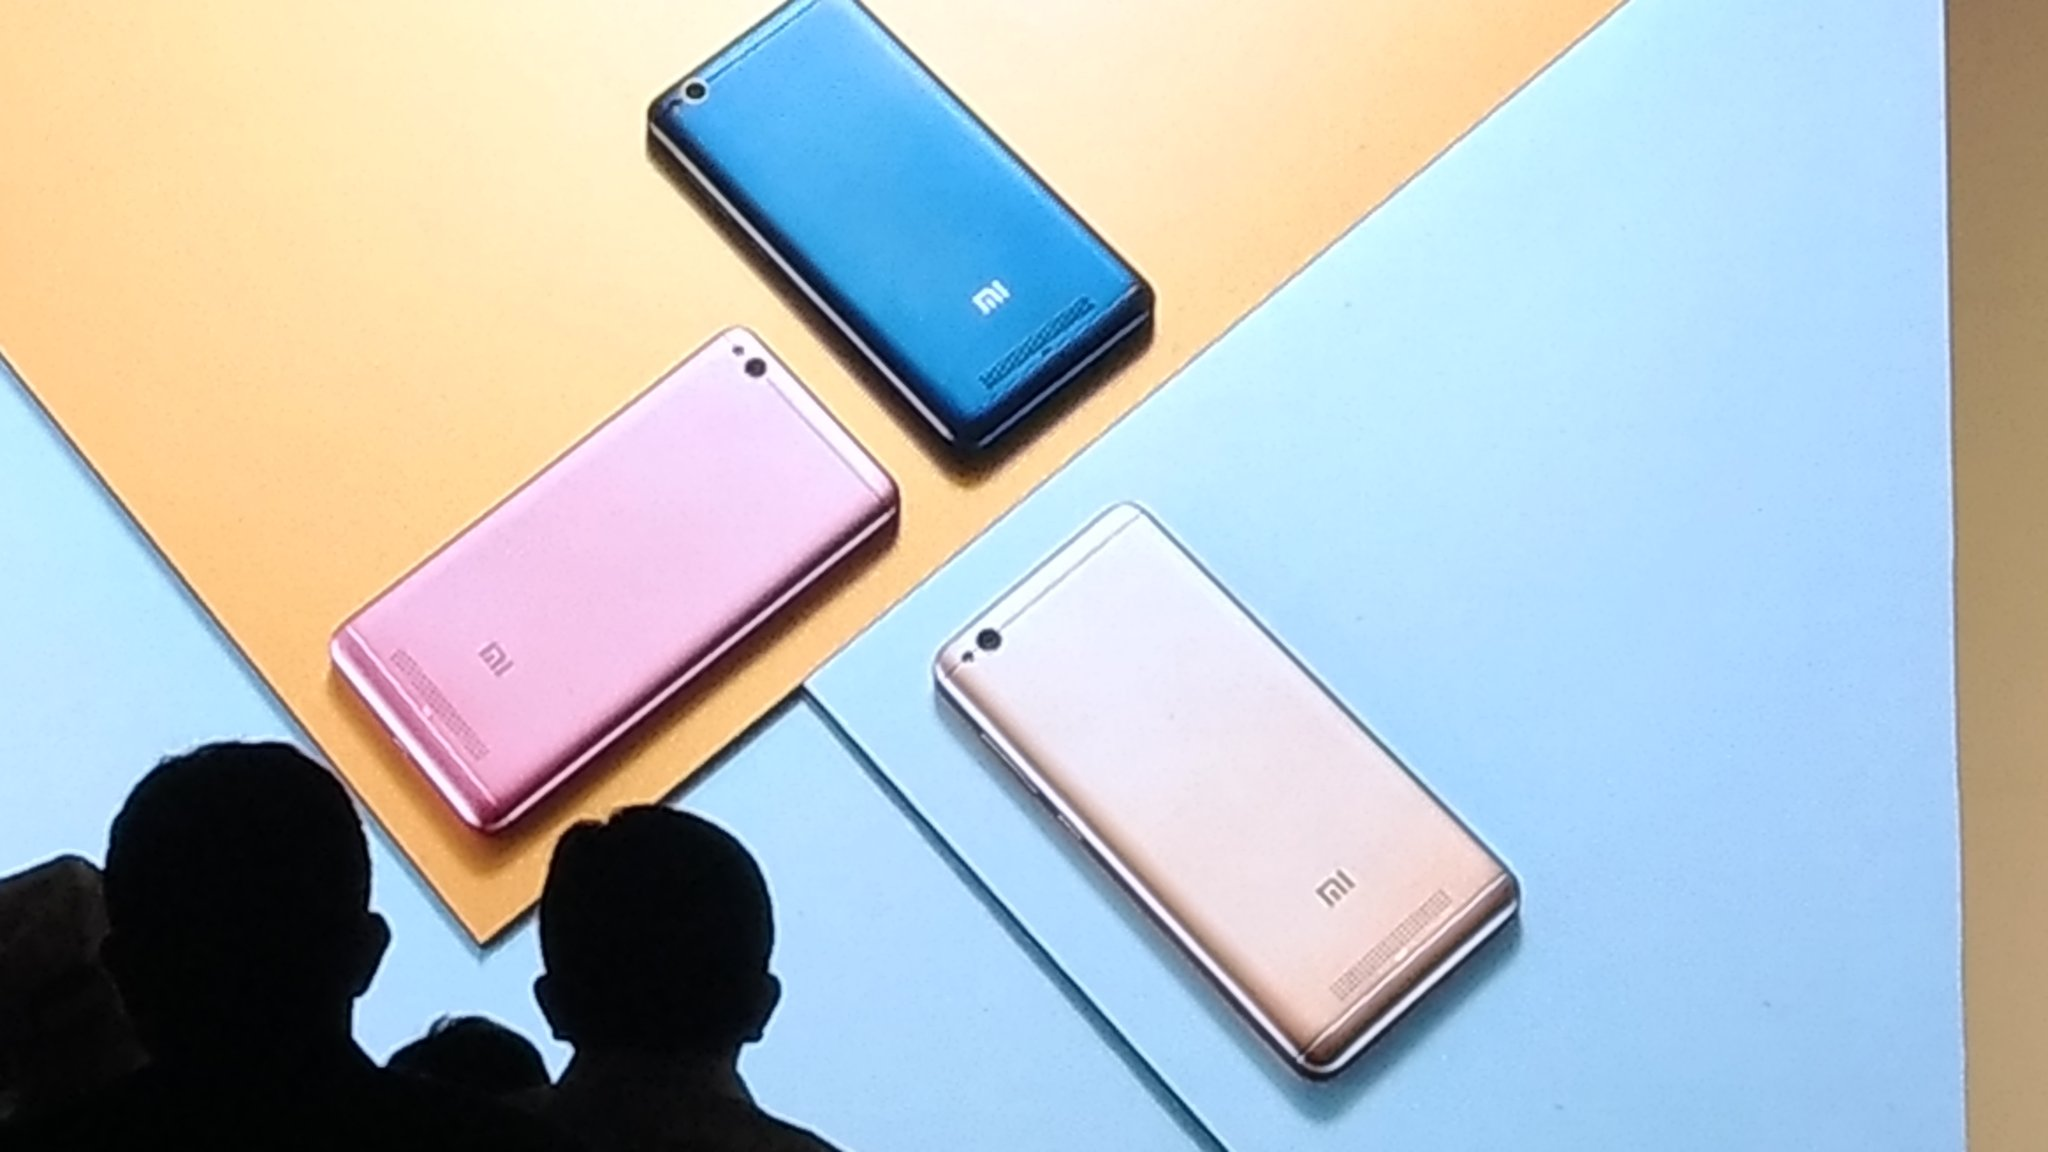 Redmi 4a Is The Cheapest Xiaomi Phone One Can Buy Today 2 16gb For Shutterbugs Packs A 13 Megapixel Rear Camera Aided By Single Led Flash Low Light Photography Up Front It Bears 5